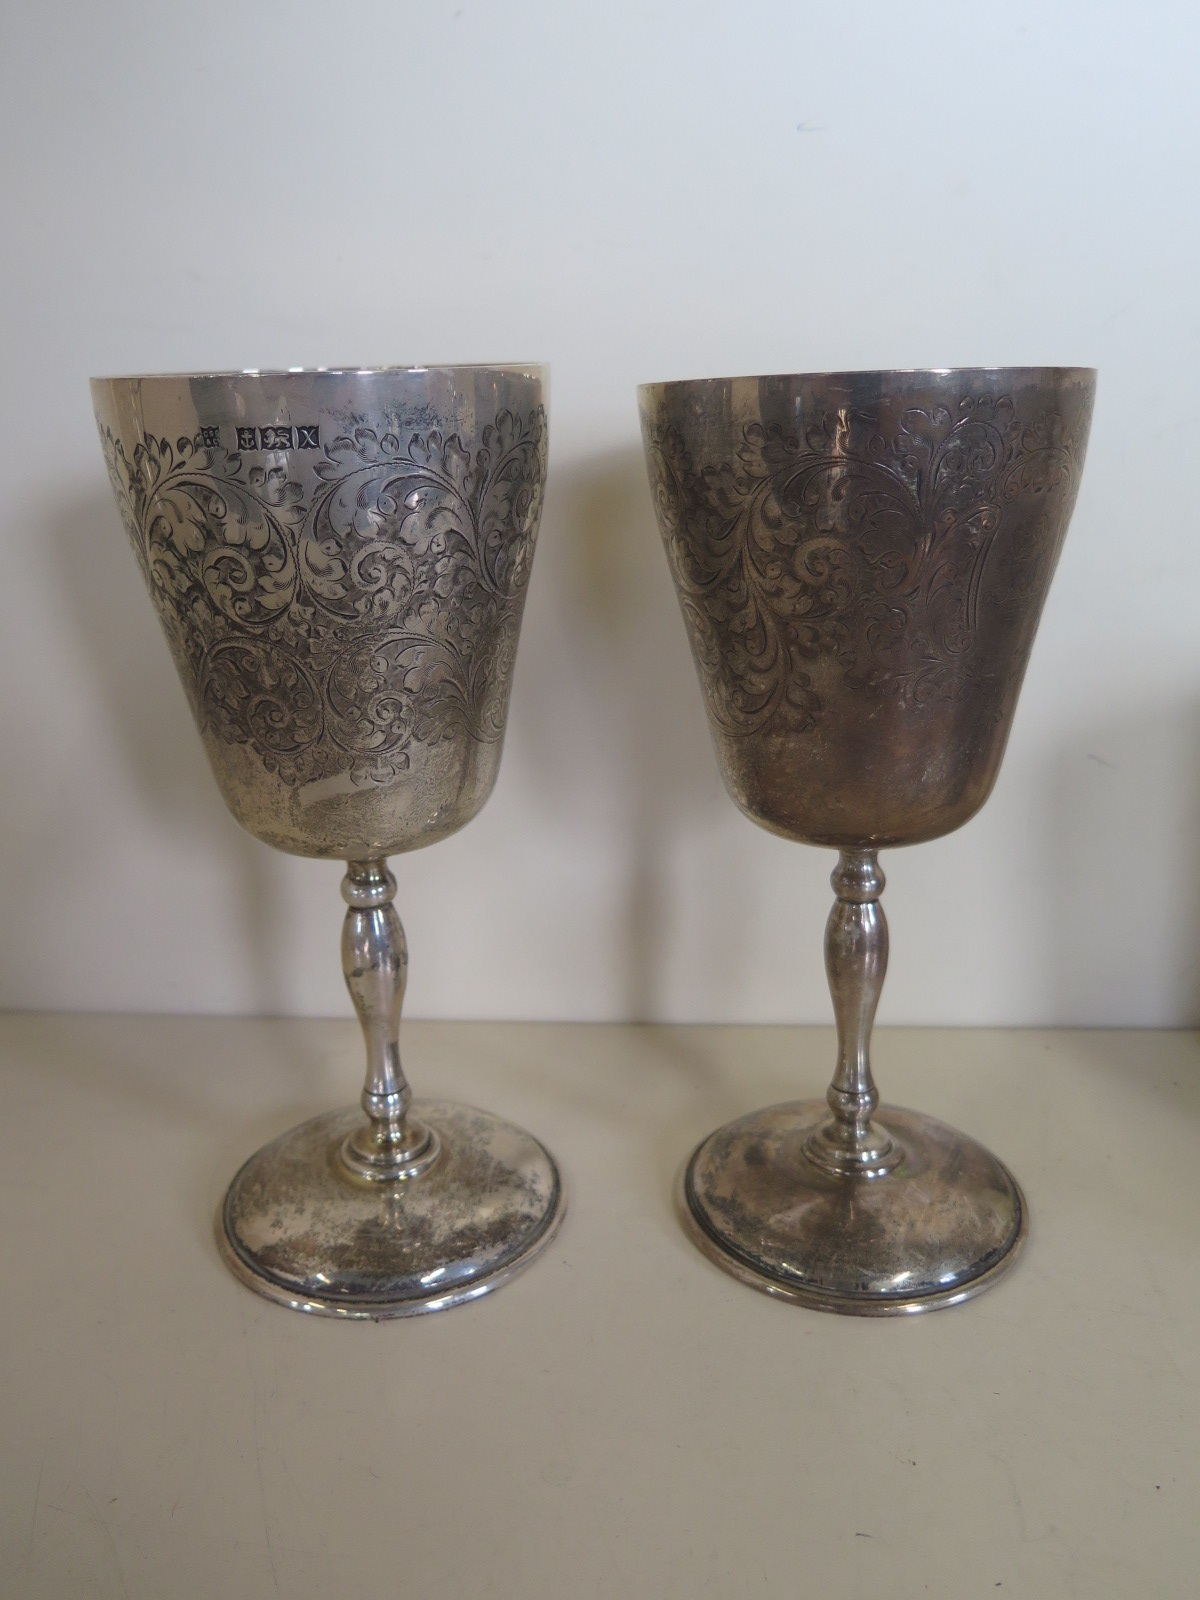 Lot 568 - A pair of silver goblets, Birmingham 1972, approx 17.5 troy oz, approx 17.8cm high, usage marks